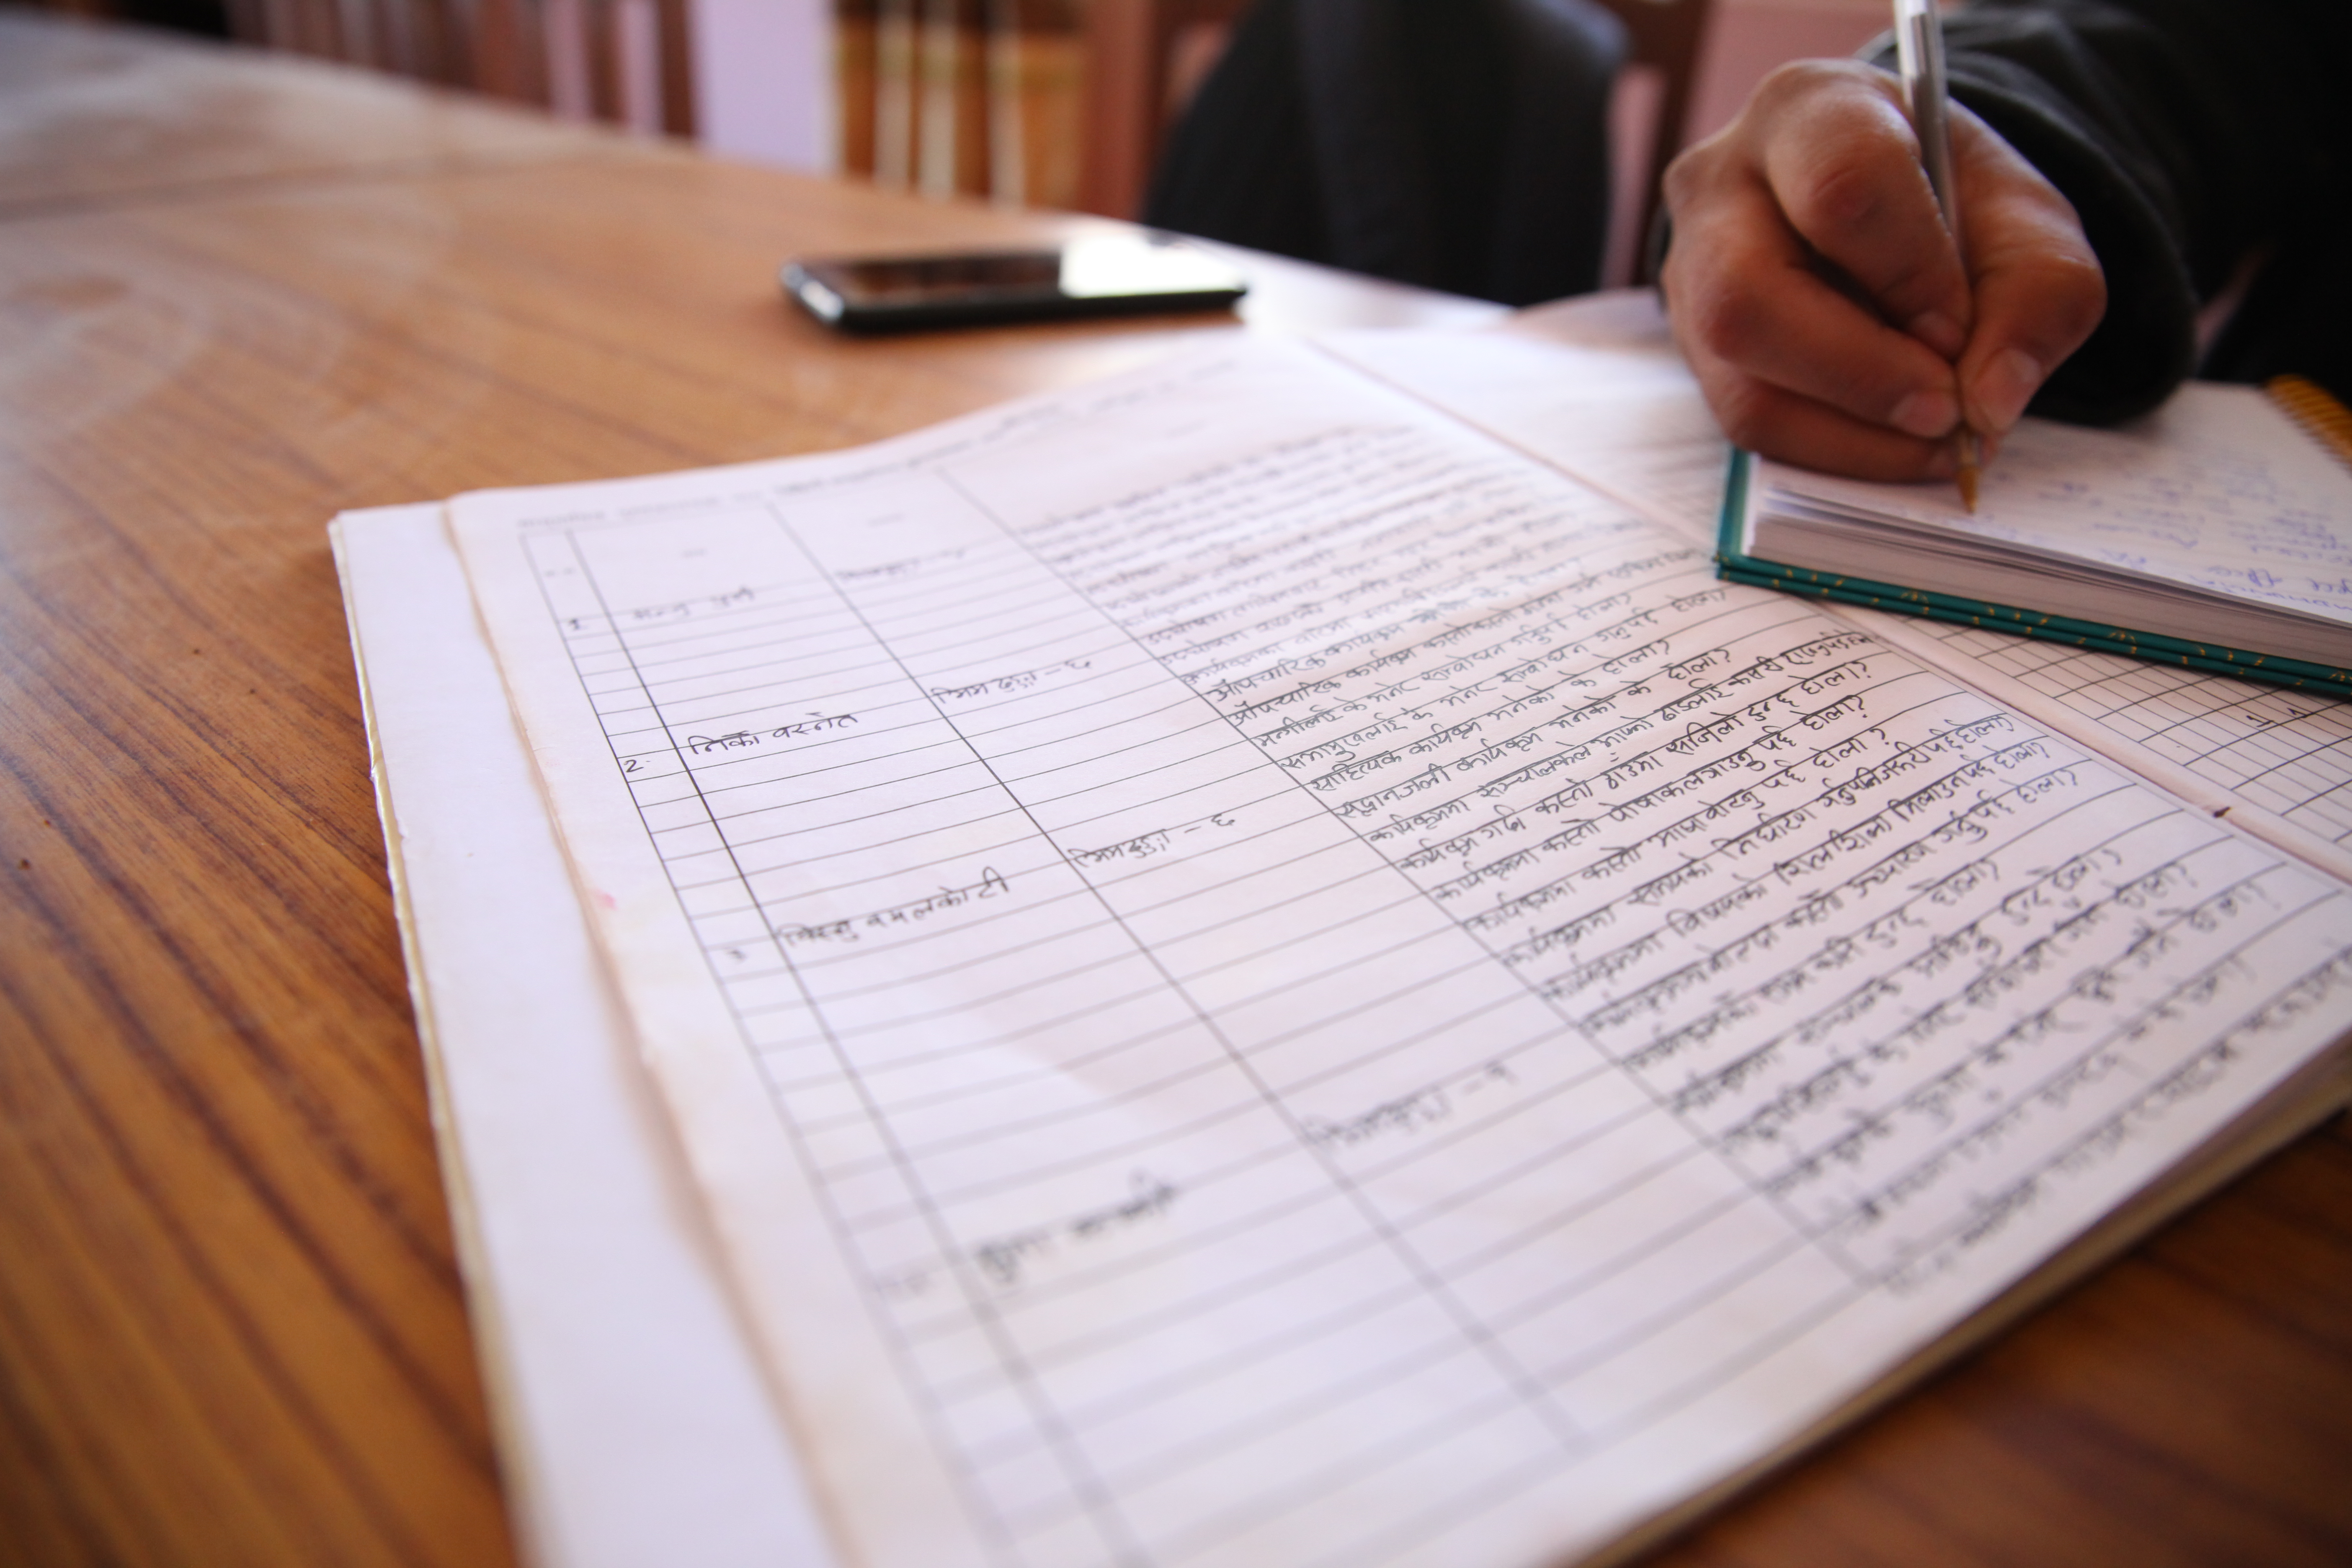 Dense pages filled with Nepali writing include questions from community members to the Tribeni community library in Bhimdhunga, Nepal, Feb. 9, 2018.